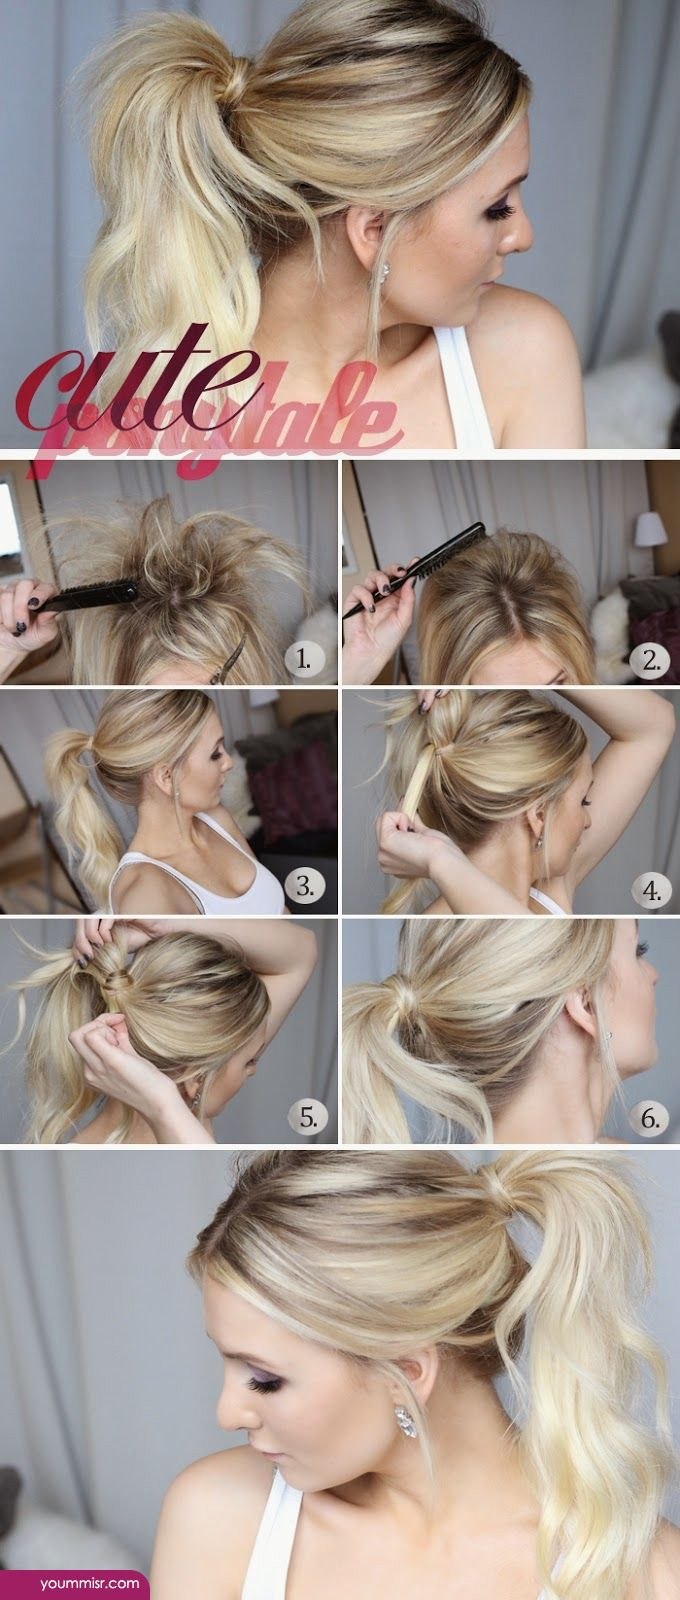 Cool Easy Hairstyles easy haircuts for girls Cool Easy Hairstyles 2015 2016 Step By Step Youtube Httpwwwyoummisr